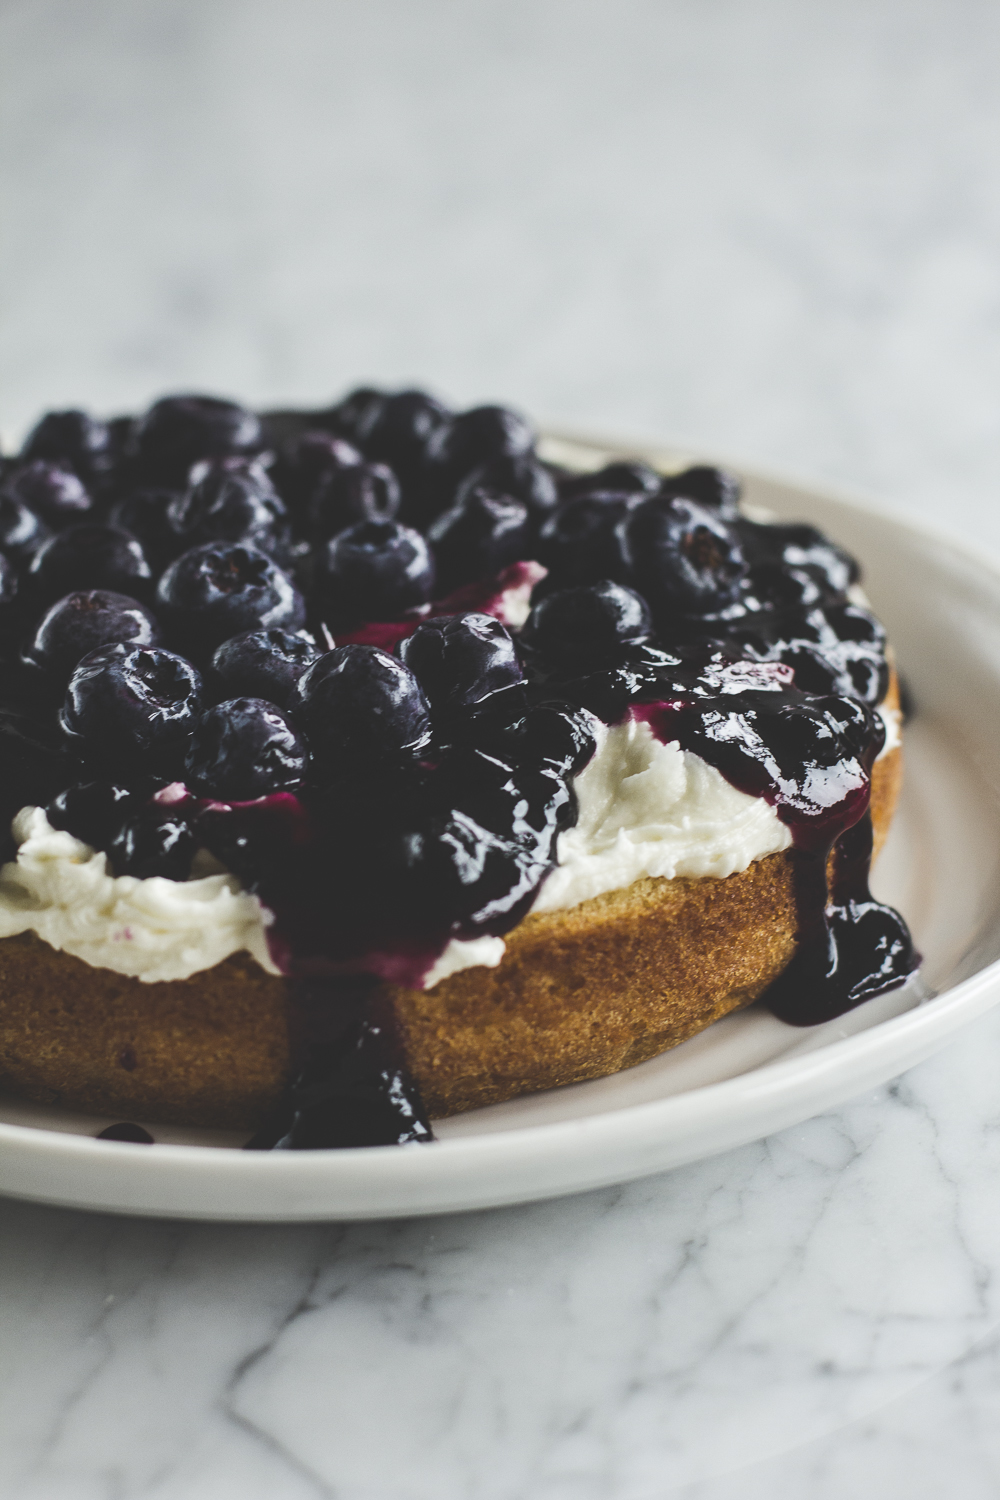 Blueberry jam and  whole blueberry filling for Victoria Sponge Birthday Cake © 2014 Helena McMurdo